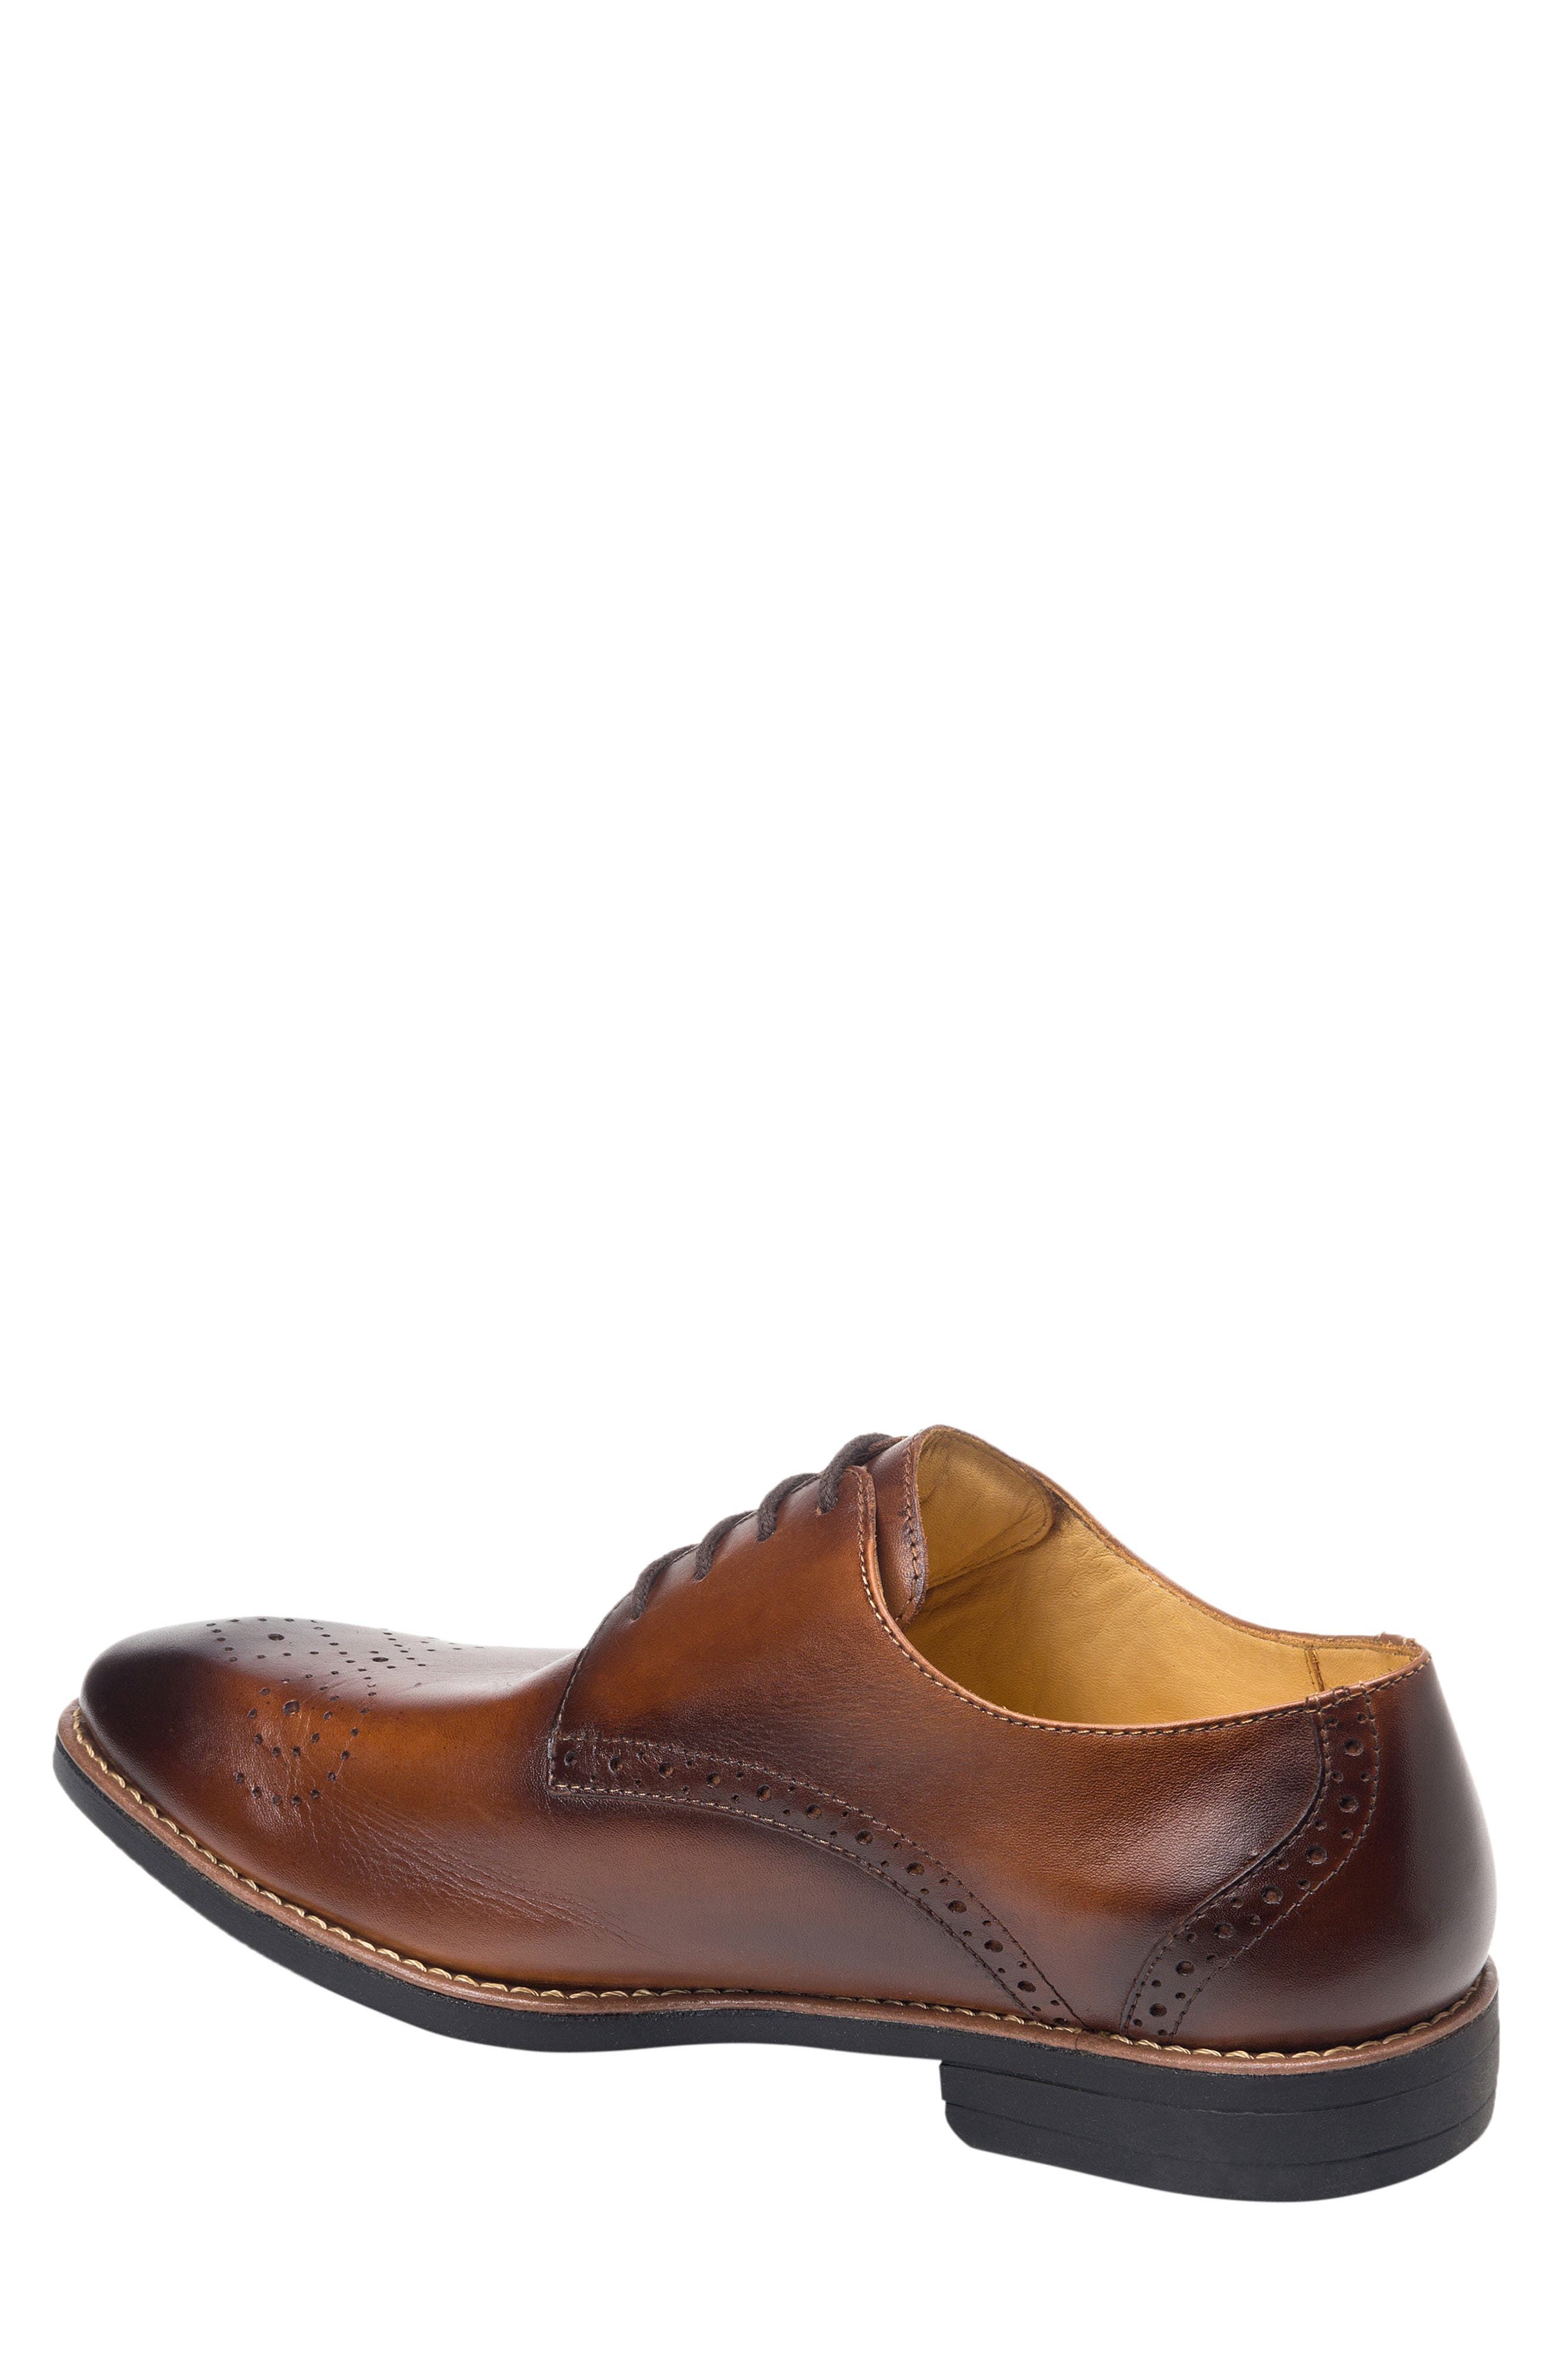 SANDRO MOSCOLONI, Mended Medallion Toe Derby, Alternate thumbnail 2, color, BROWN LEATHER